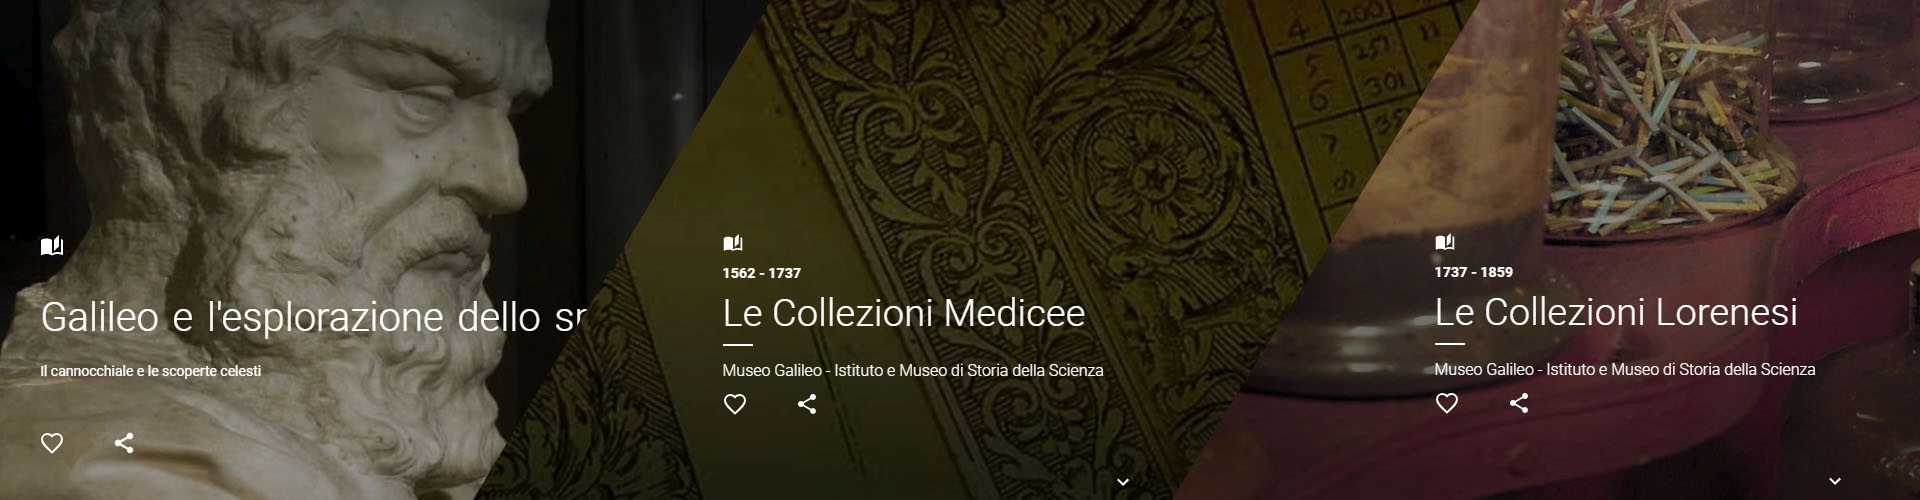 Il Museo Galileo sul Google Cultural Institute